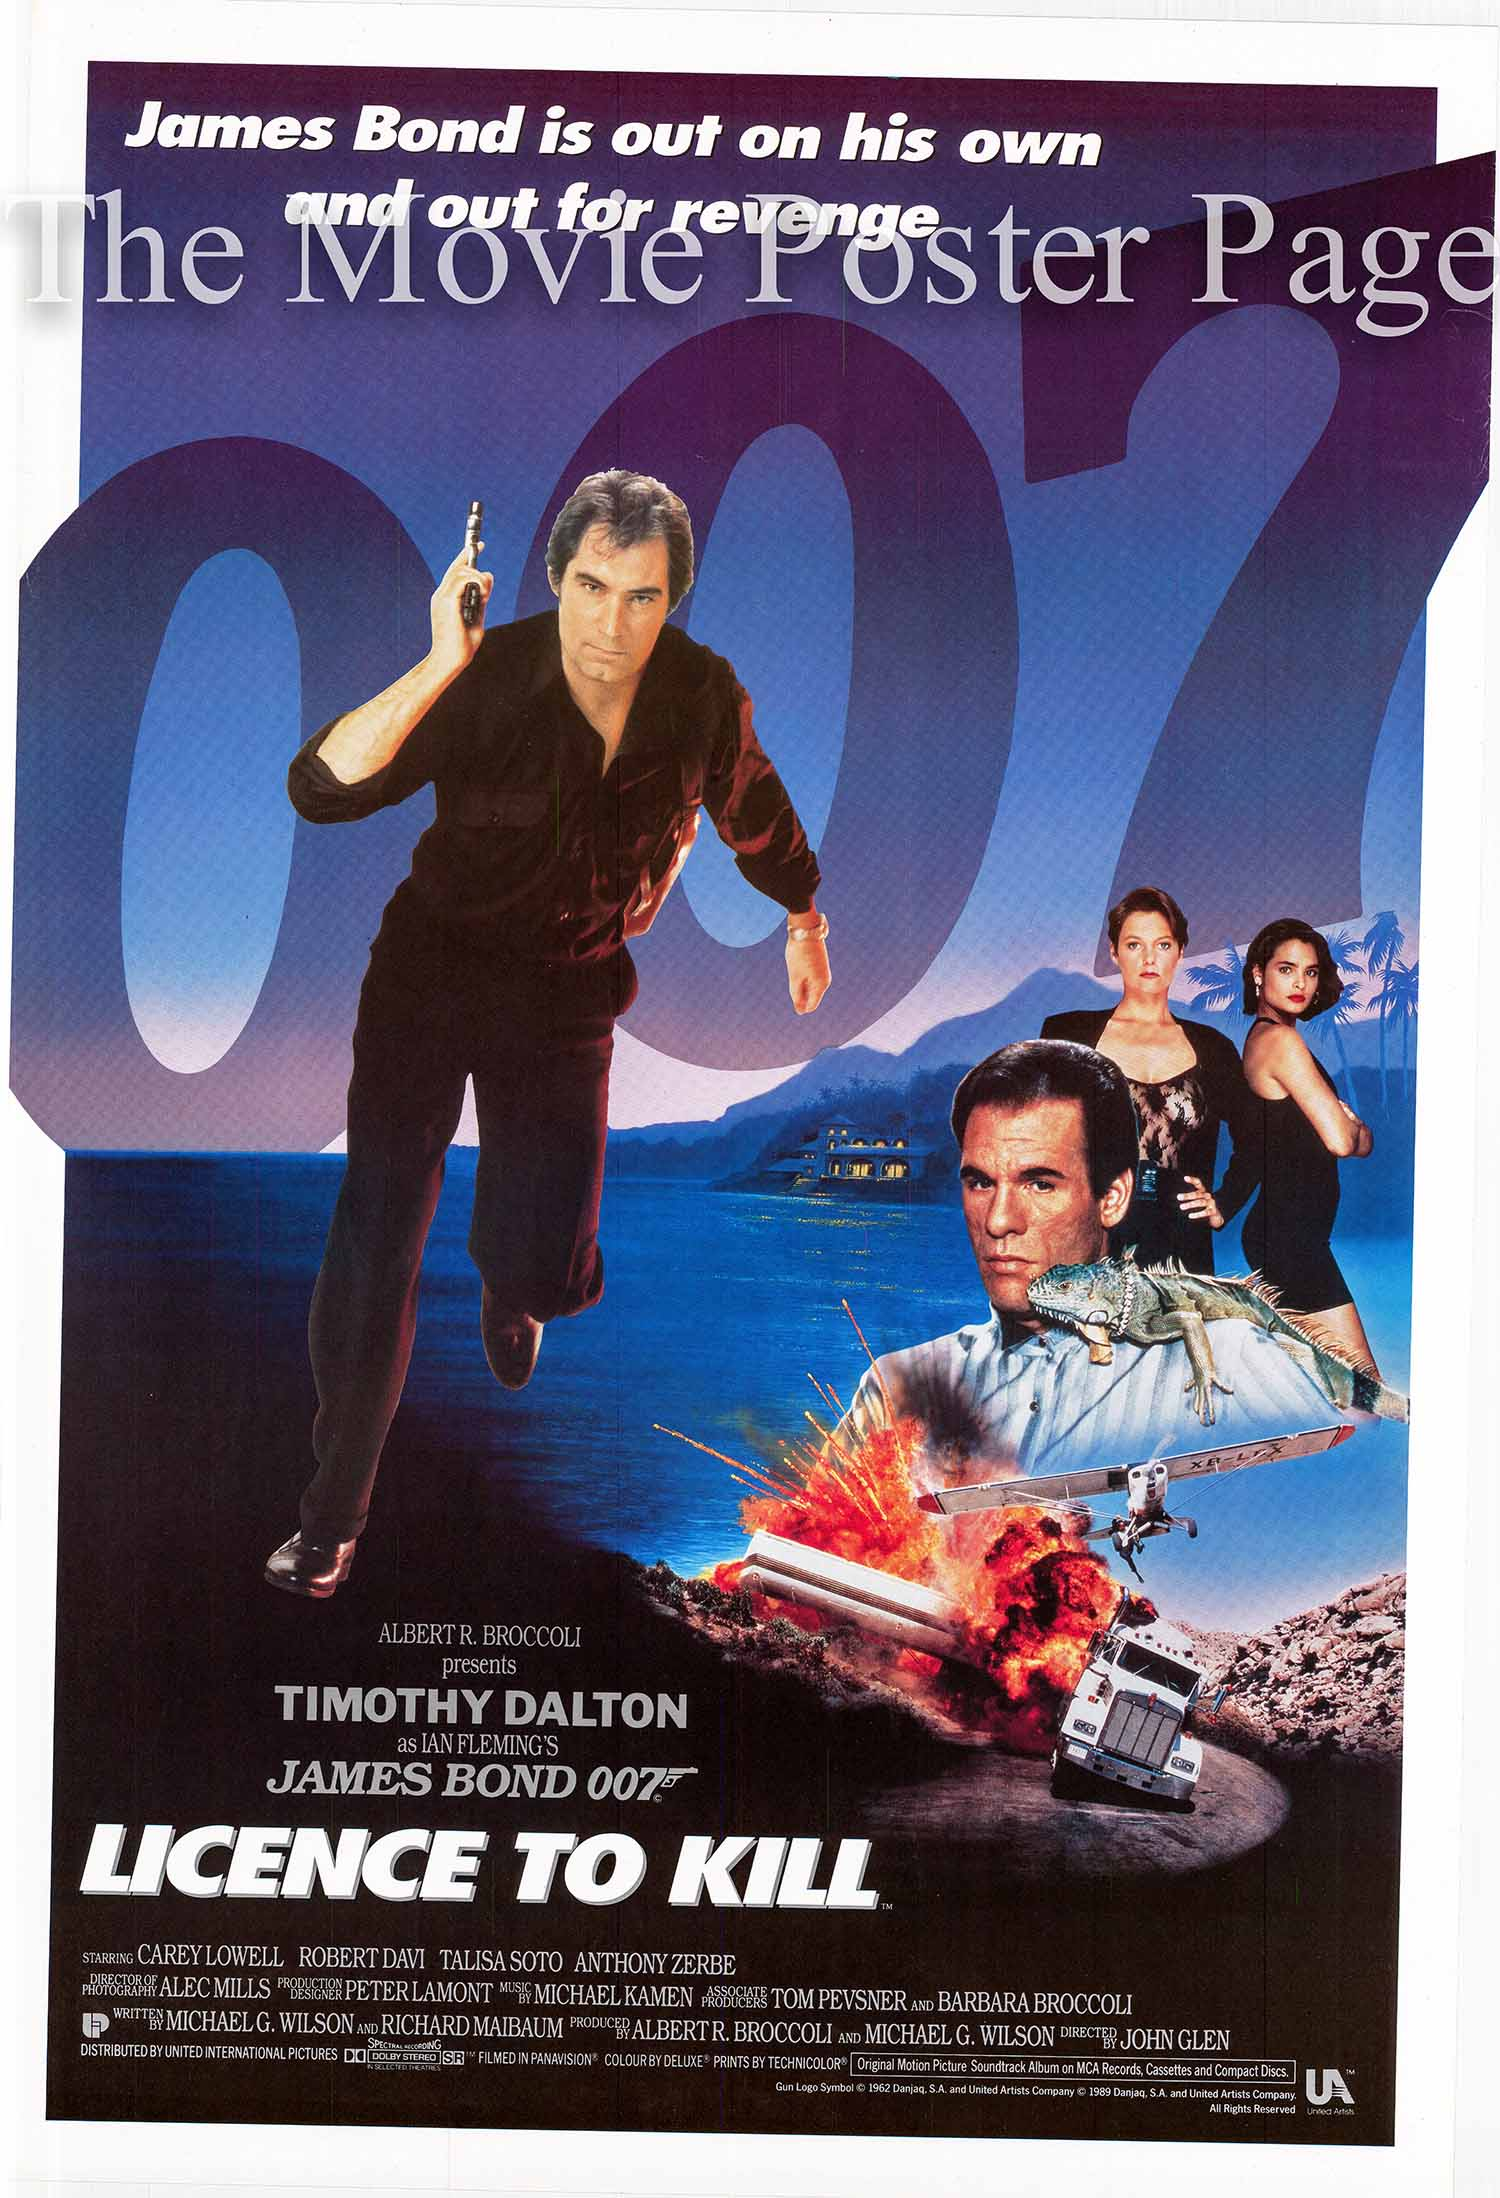 Pictured is the UK one-sheet promotional poster for the 1989 John Glen James Bond film License to Kill, starring Timothy Dalton.